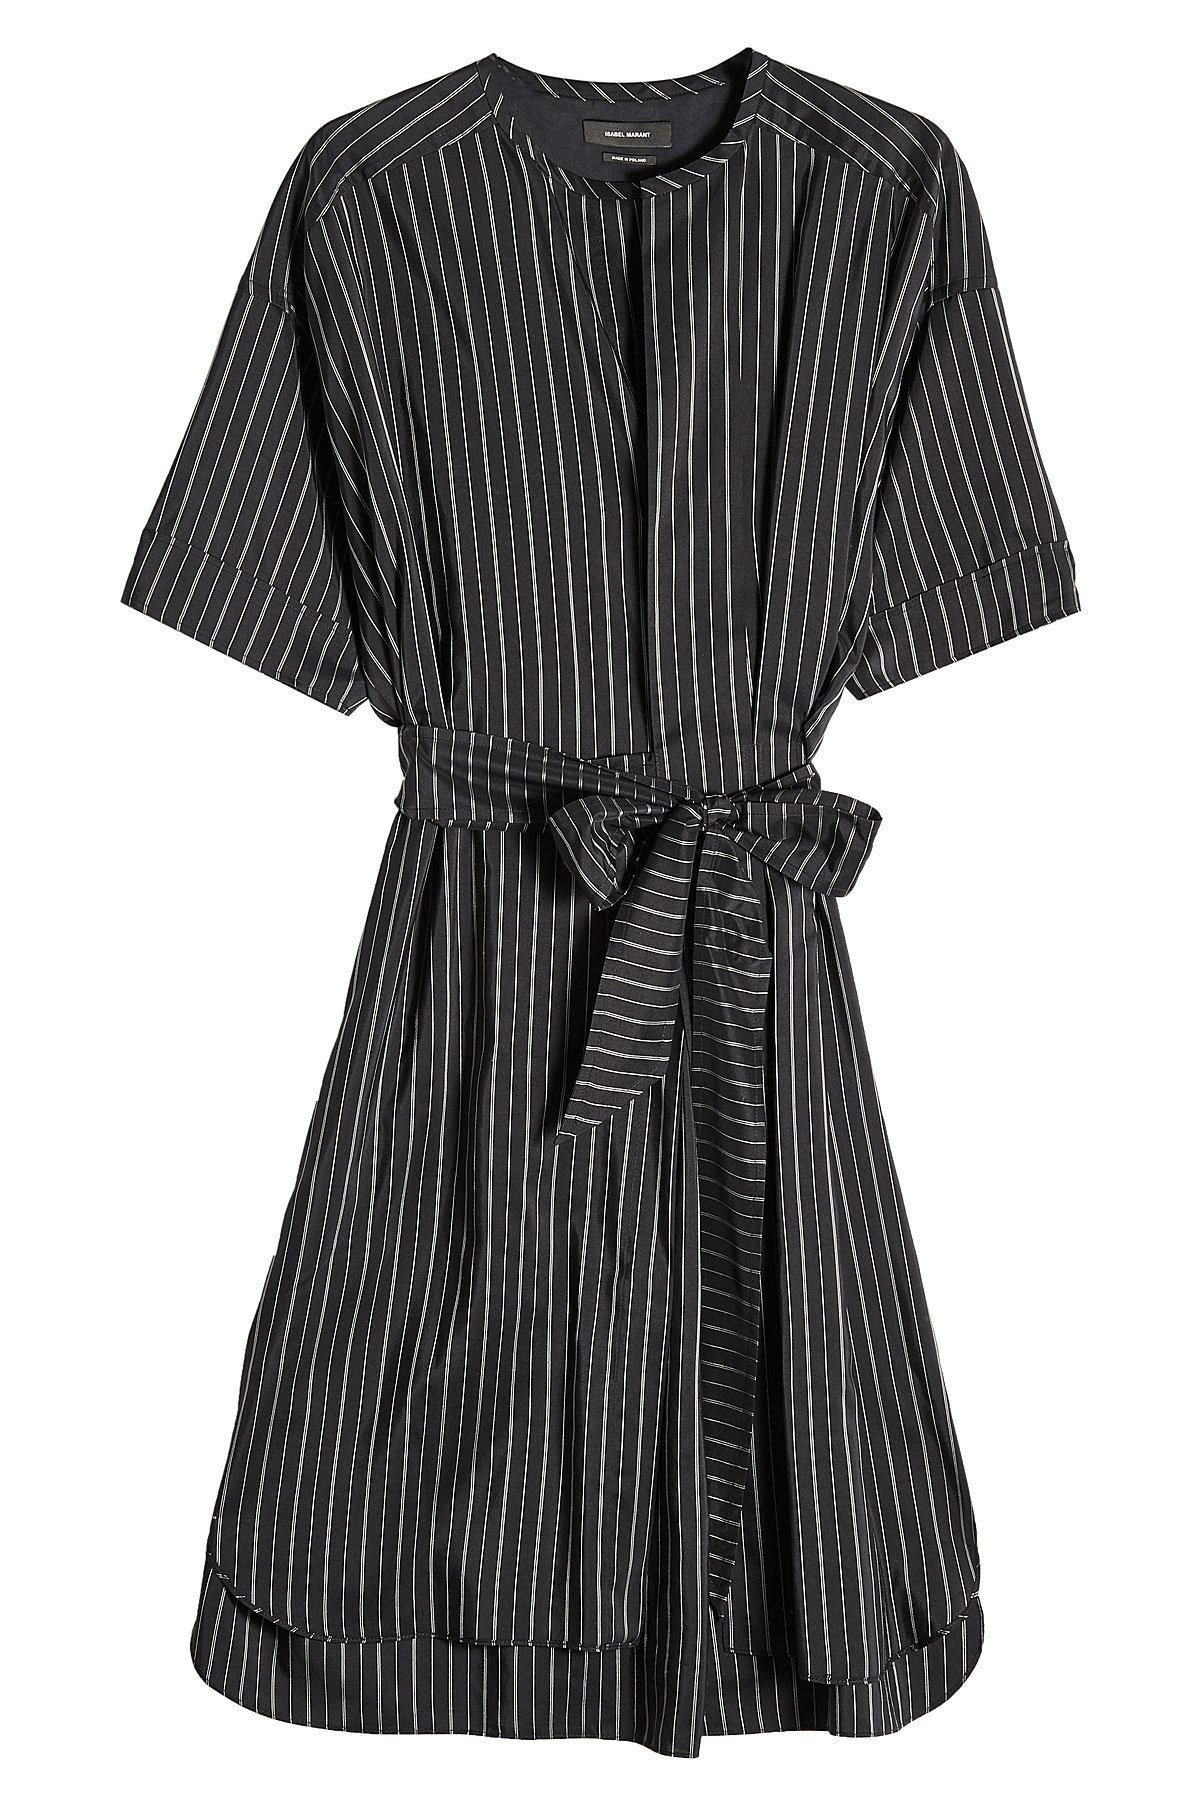 Isabel Marant Striped Dress With Silk In Black